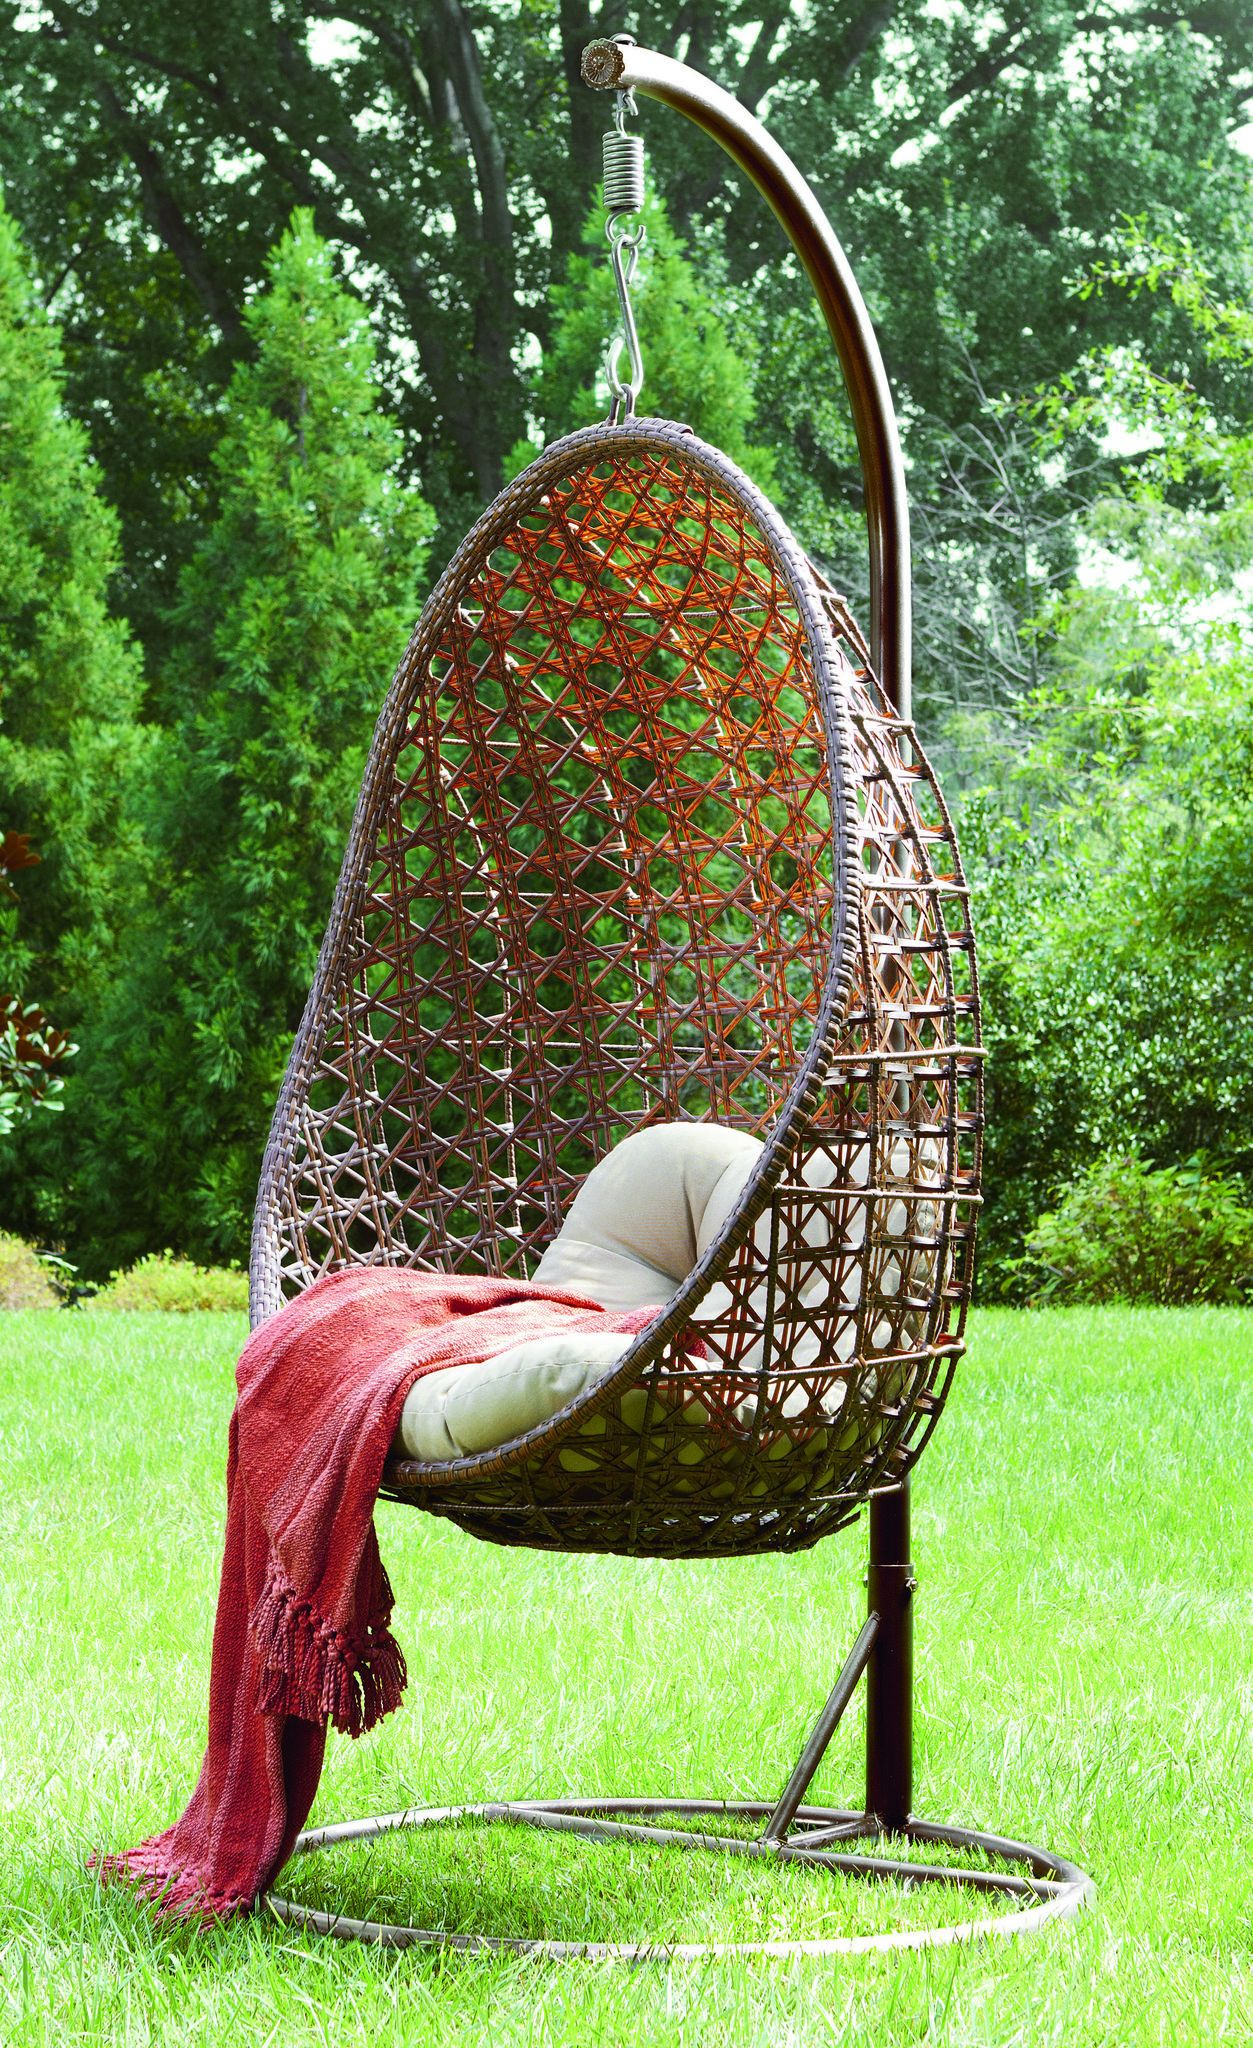 Three Hanging Outdoor Chairs In Budget Hanging Chair Urban